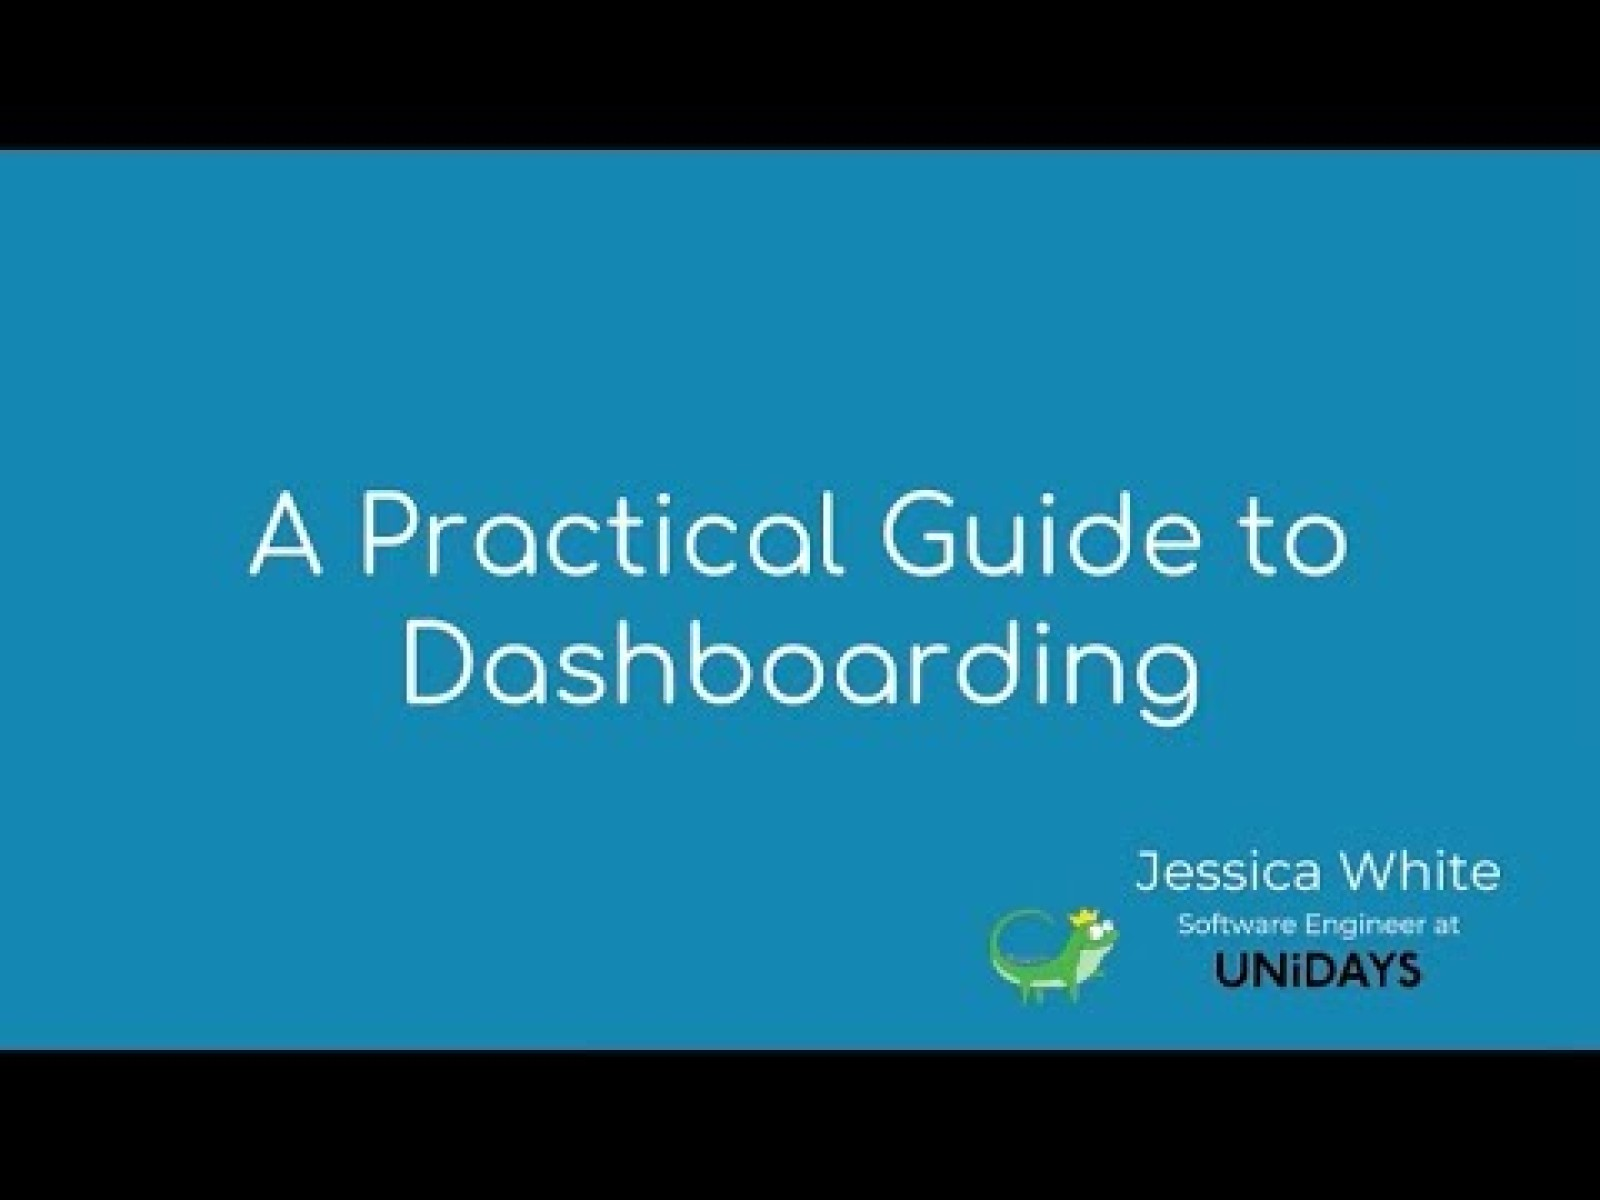 A Practical Guide To Dashboarding